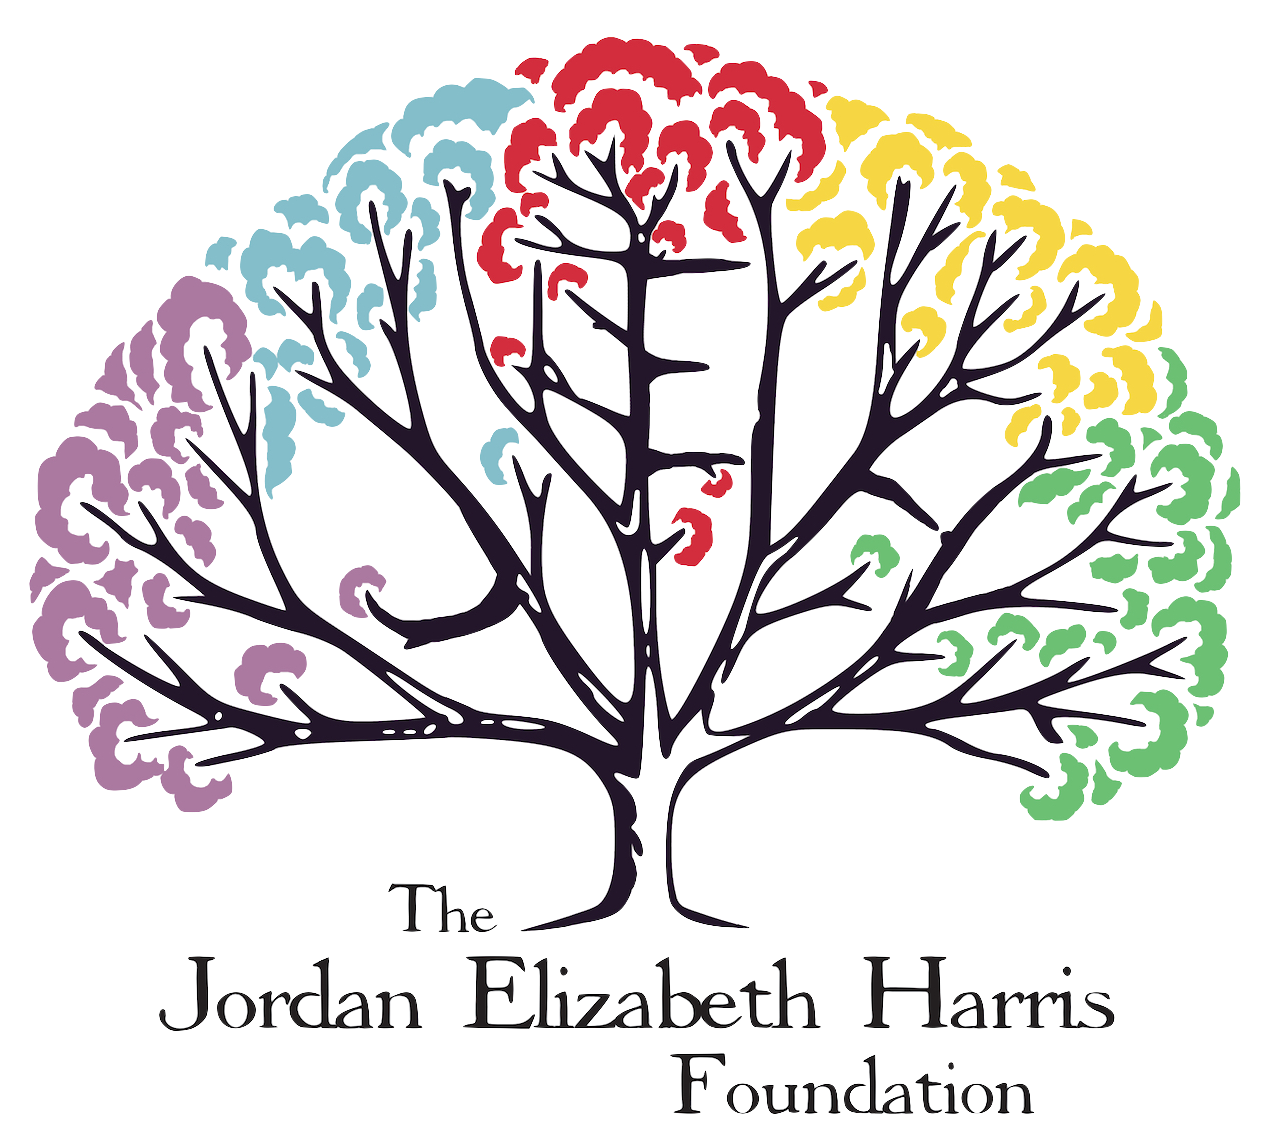 The Jordan Elizabeth Harris Foundation